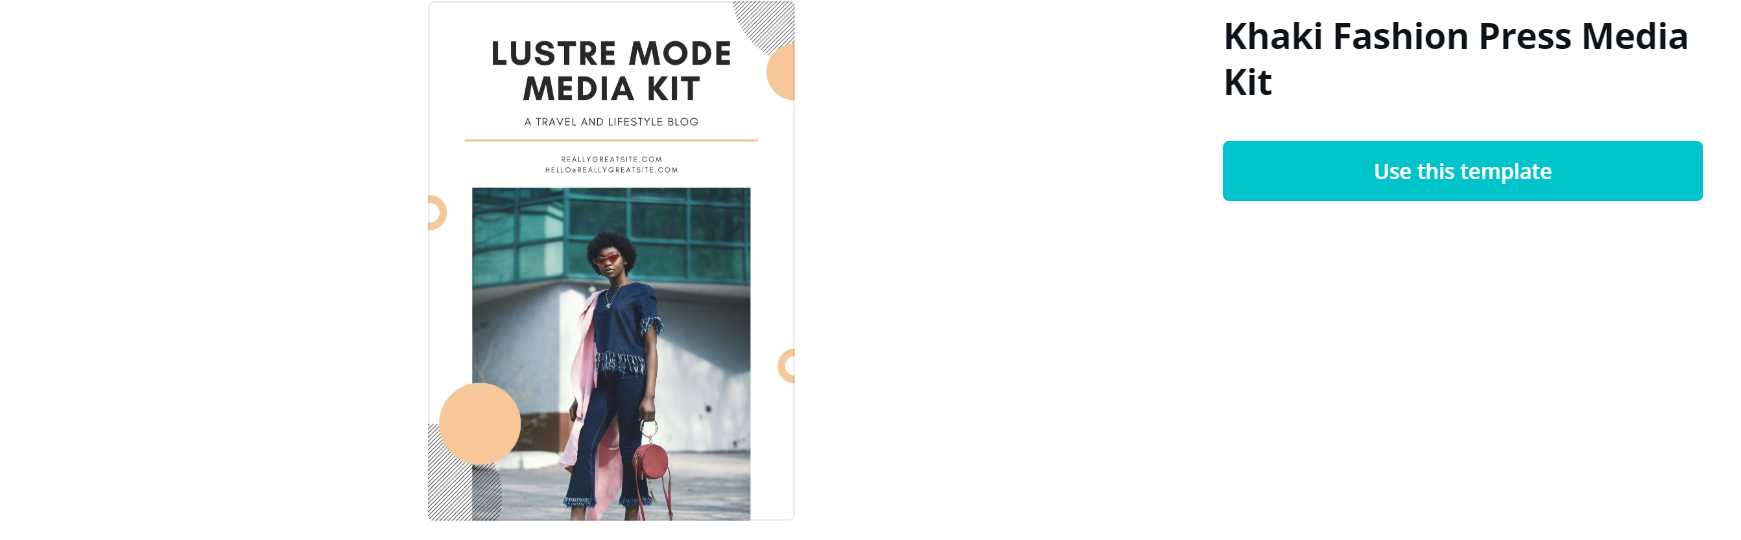 media kit canva